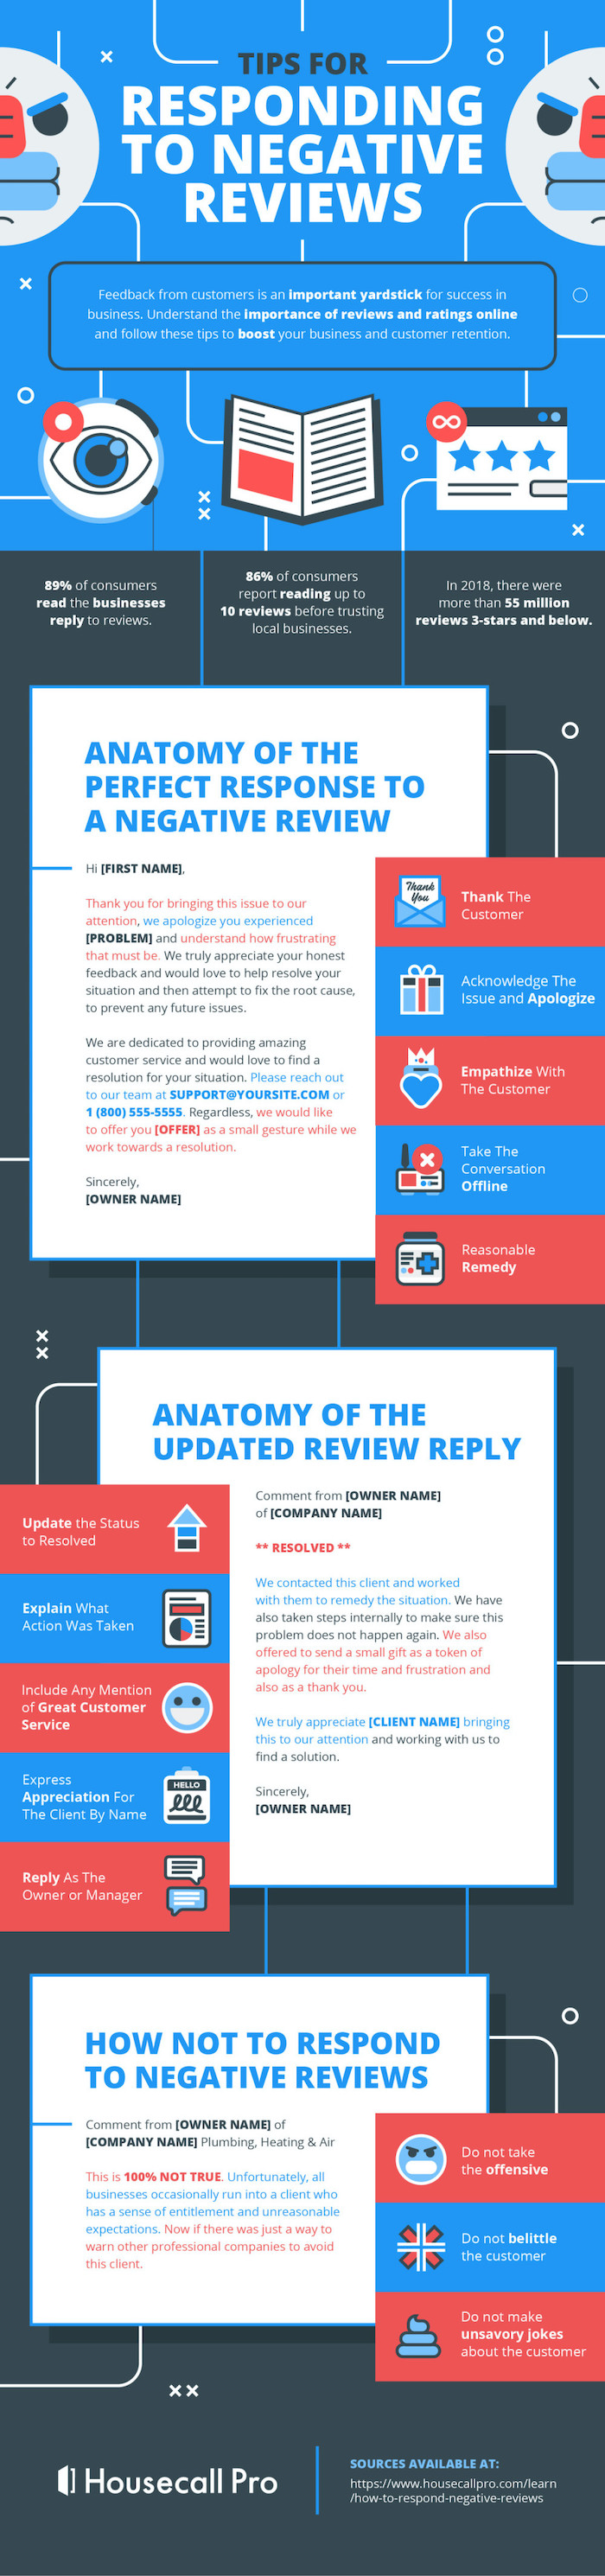 reasons to respond to negative reviews with templates of negative review response anatomy.